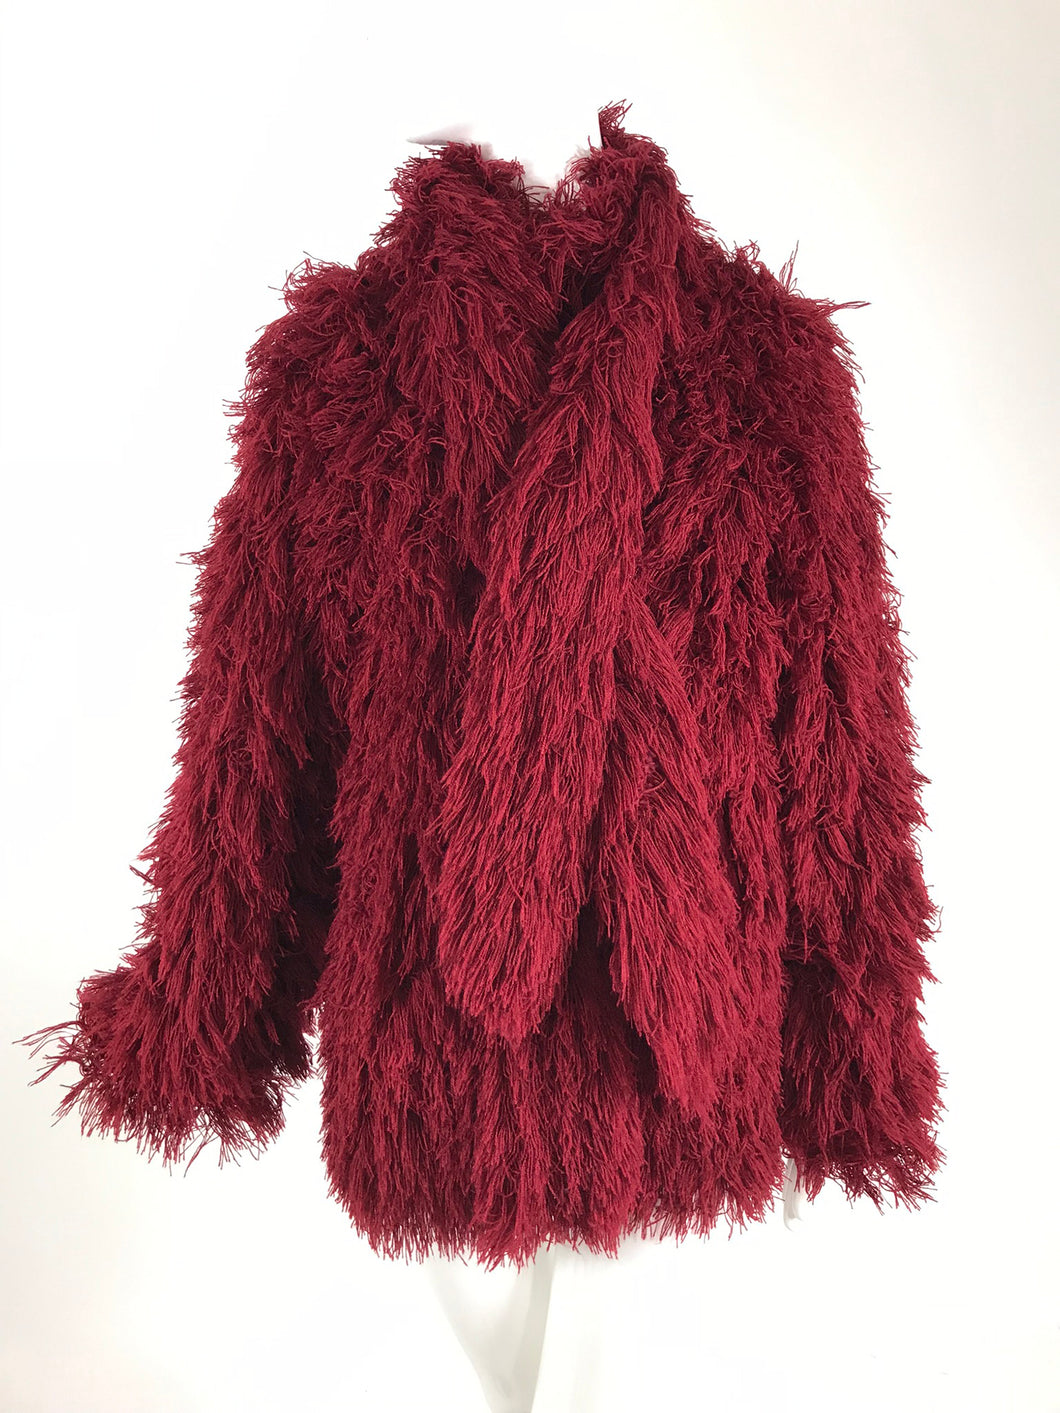 Vintage Arissa France Burgundy Faux Fur Jacket and Scarf 1980s